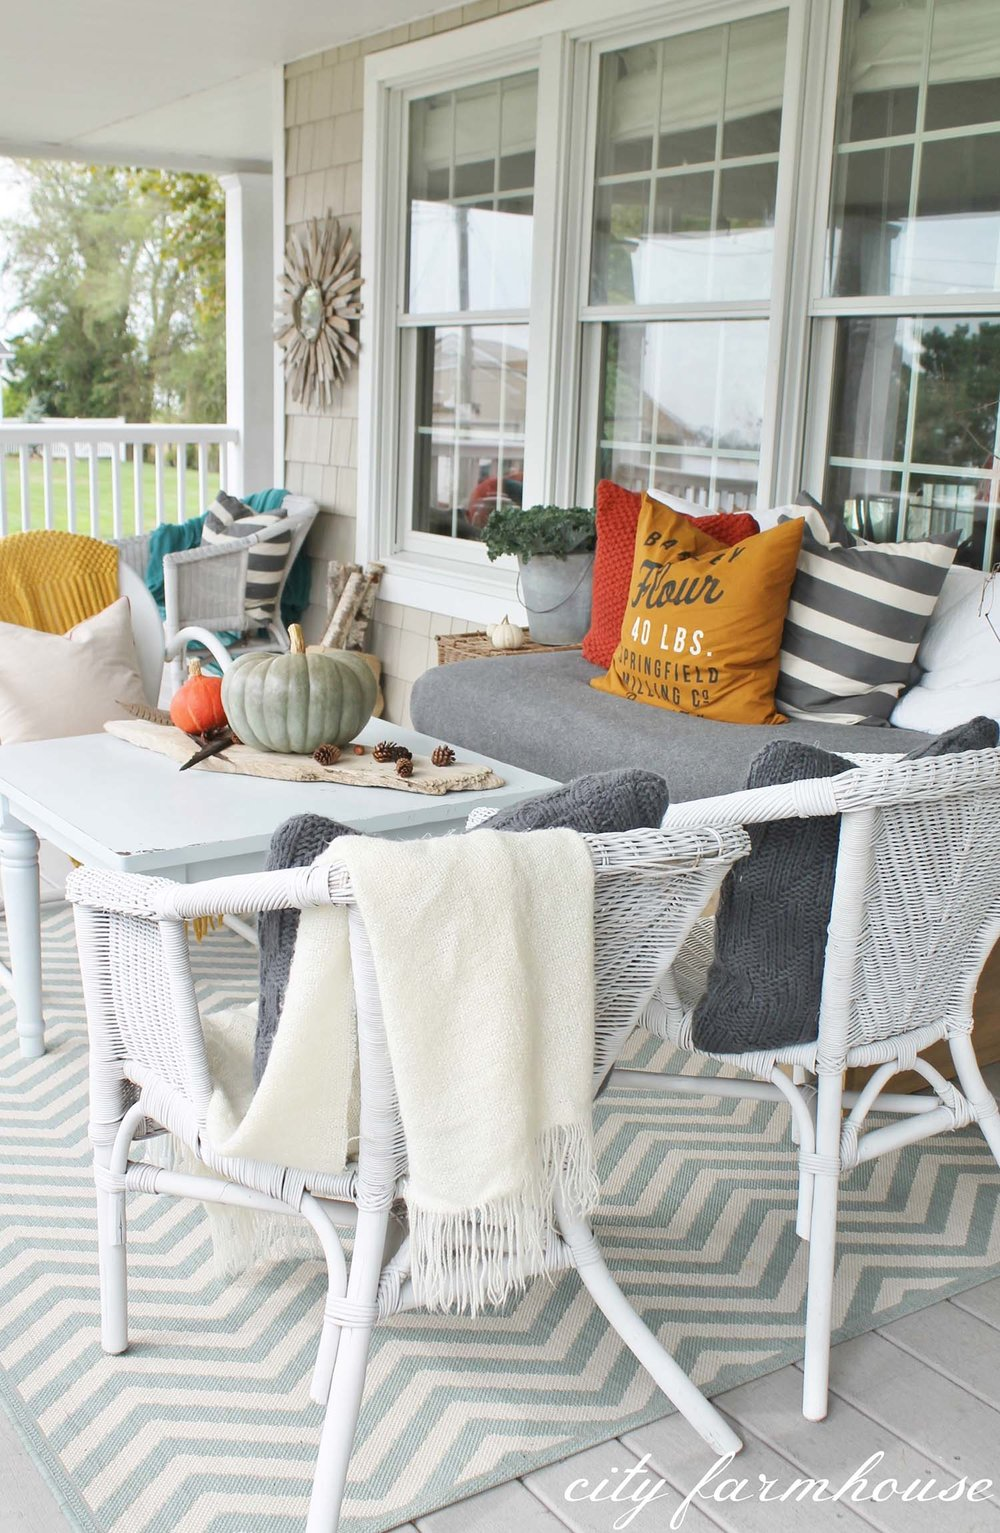 Fall-Outdoor-Decorating-Ideas-21-1-Kindesign.jpg